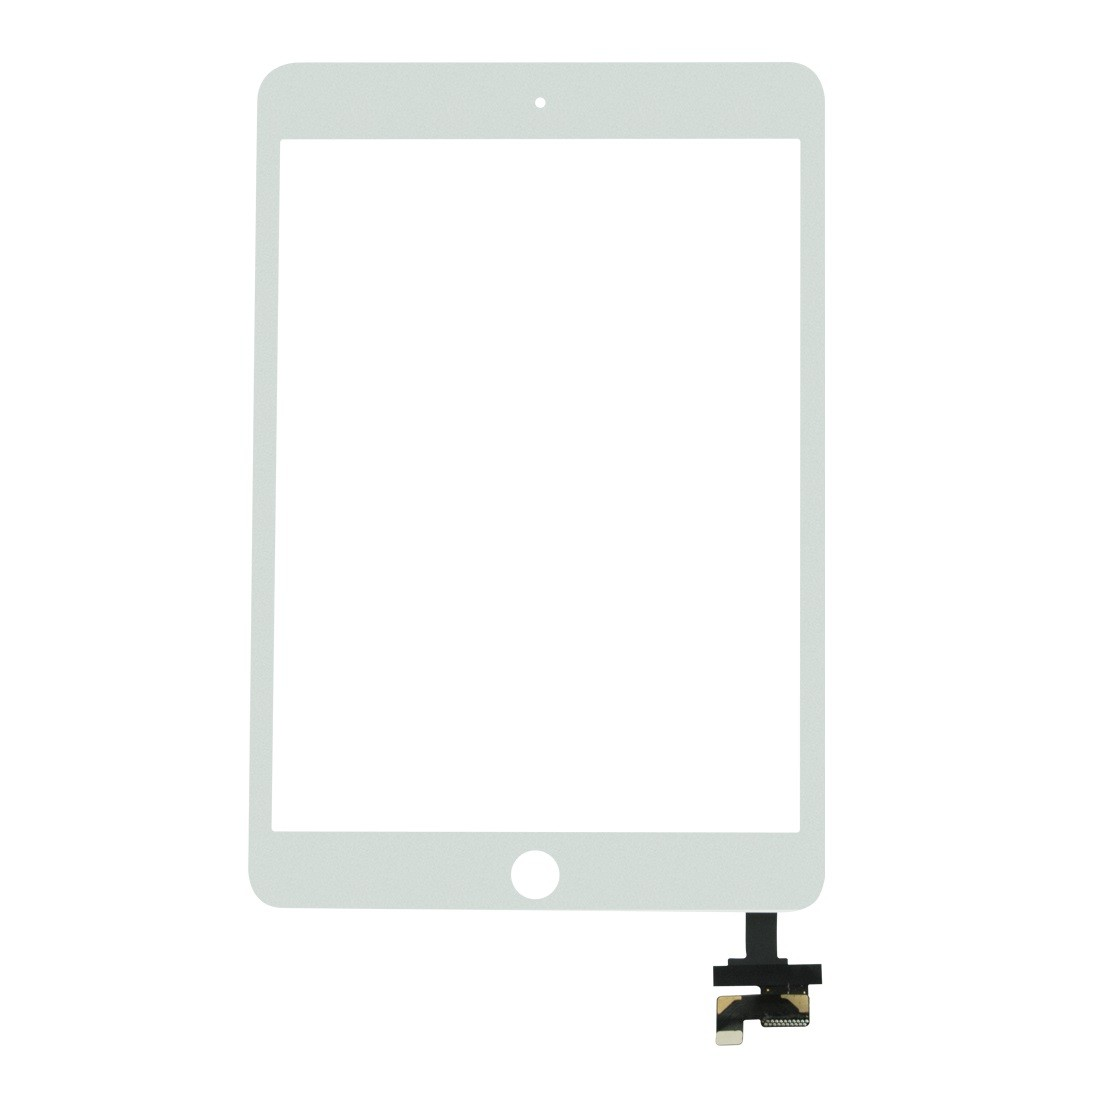 Replacement Digitizer Glass & Pre-soldered IC Flex for iPad Mini 3 White